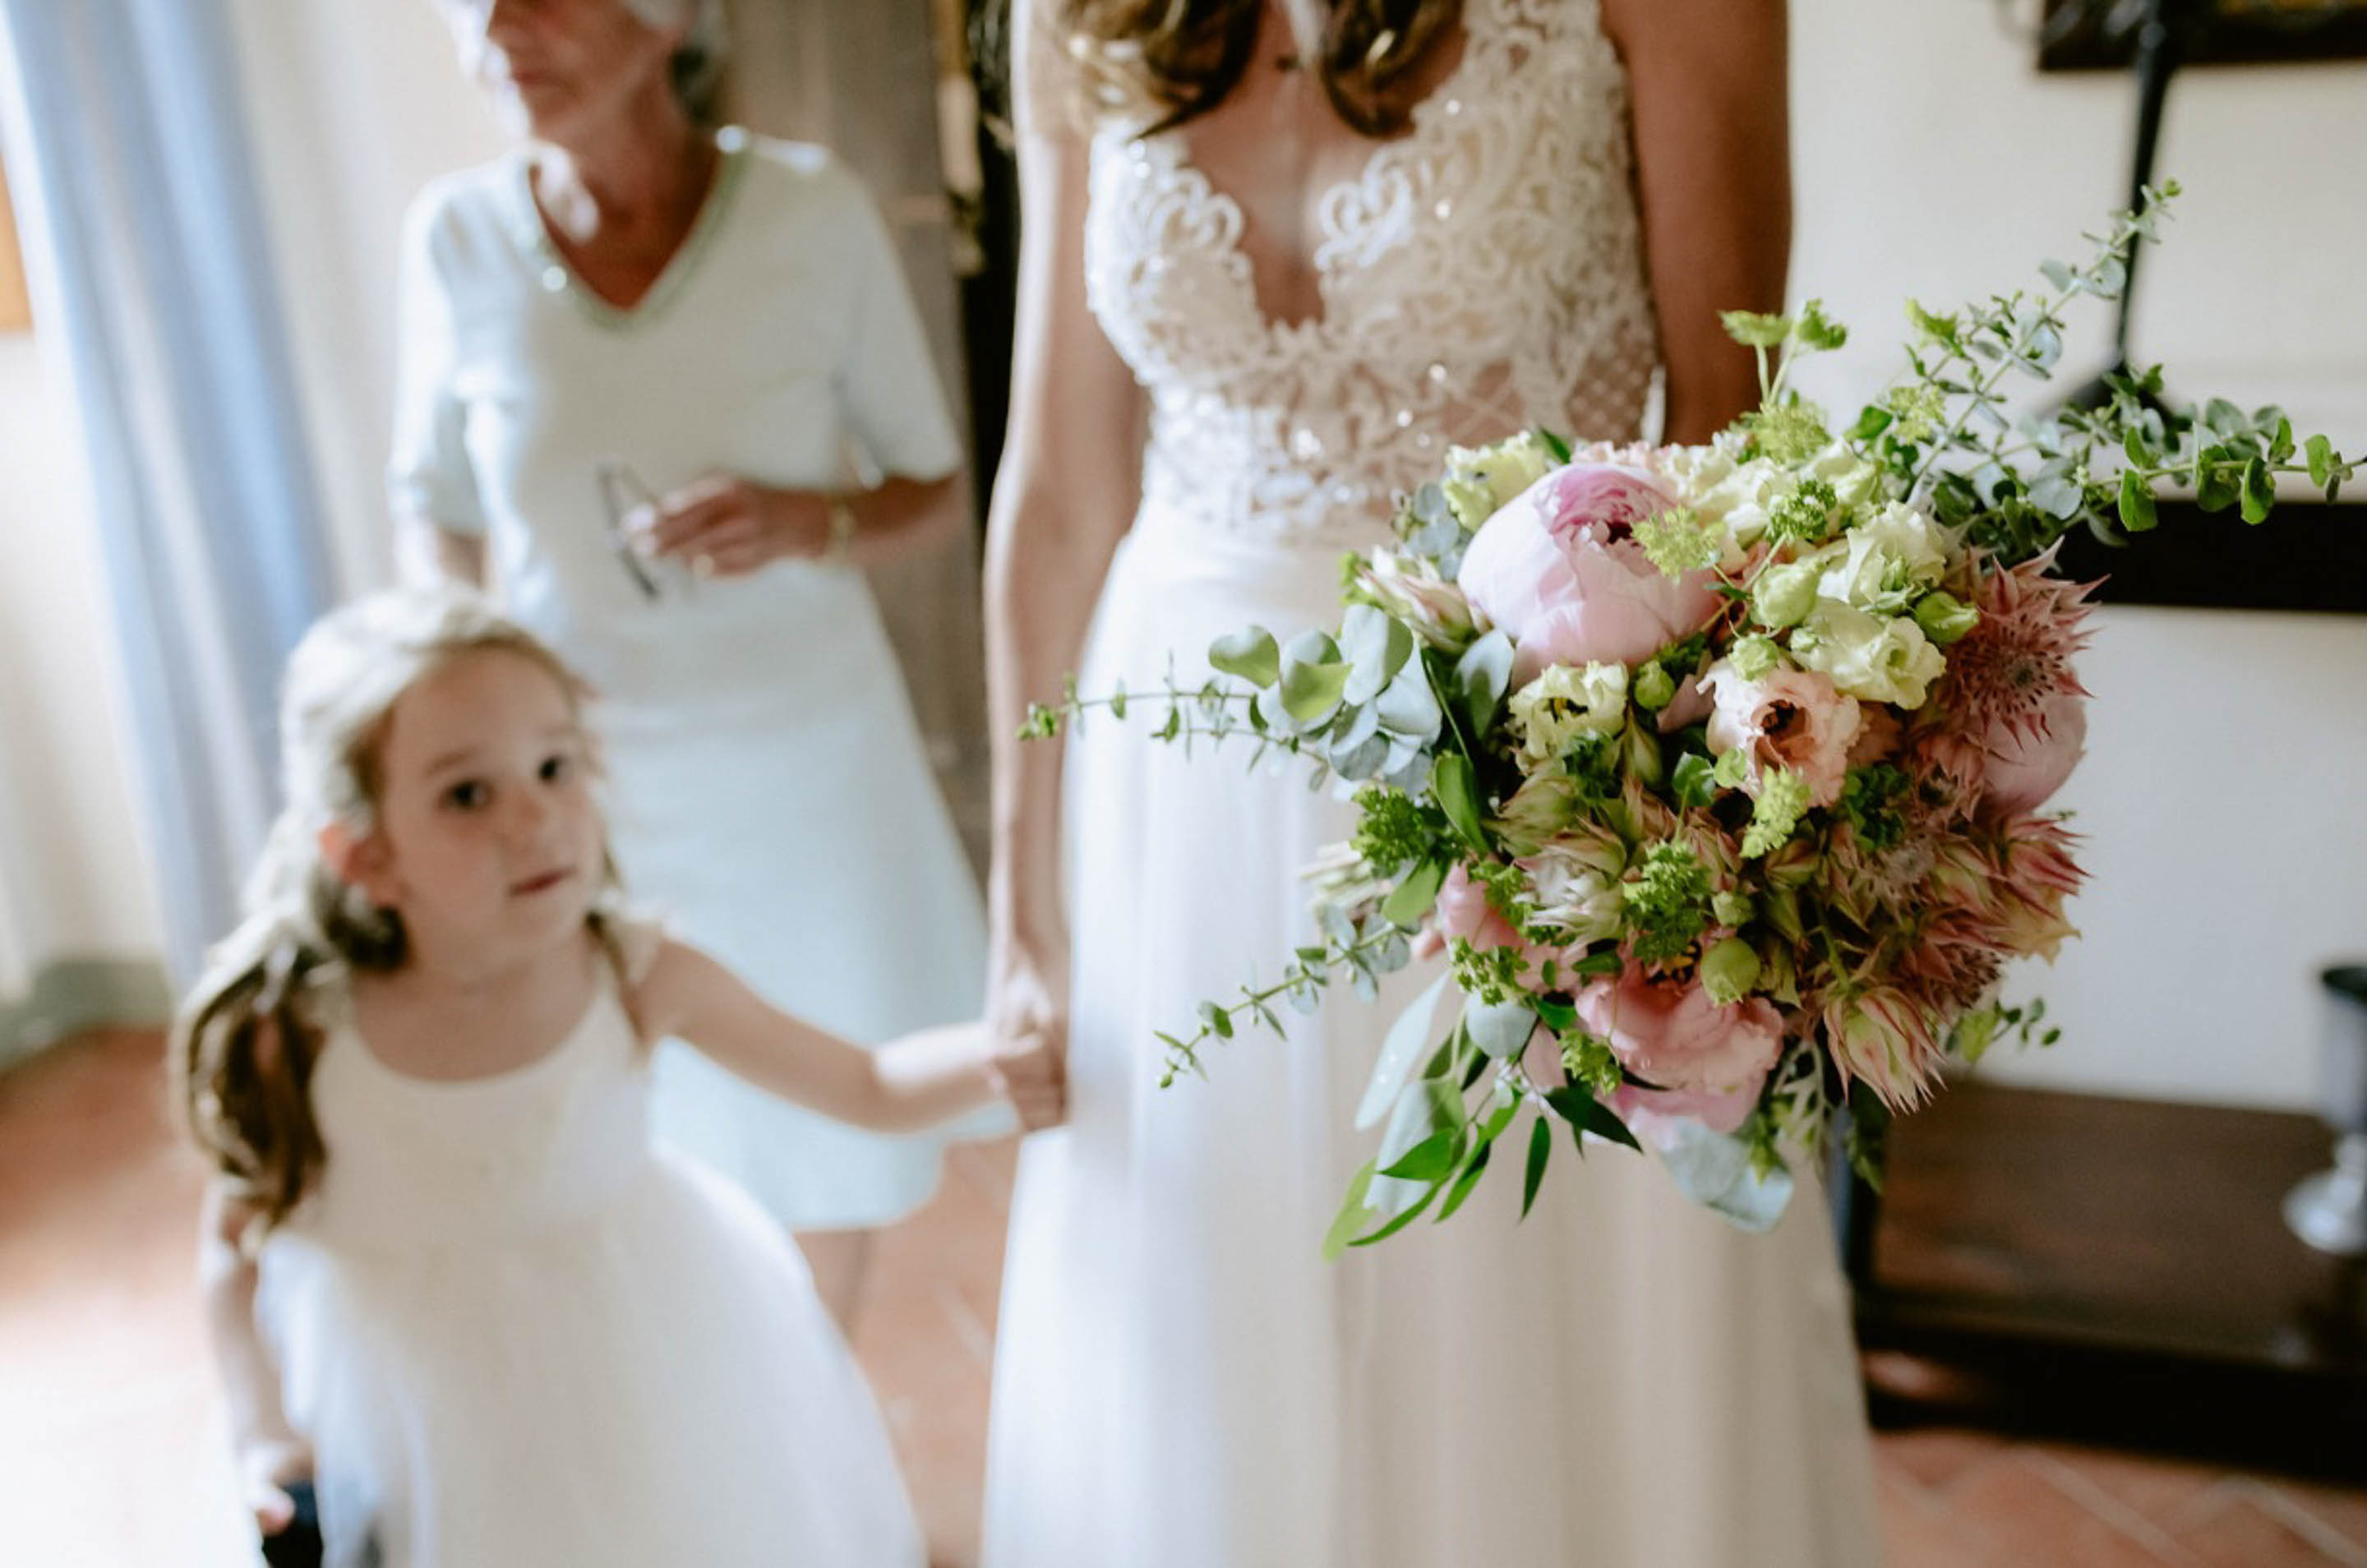 wedding_planner_tuscany_the_knot-62